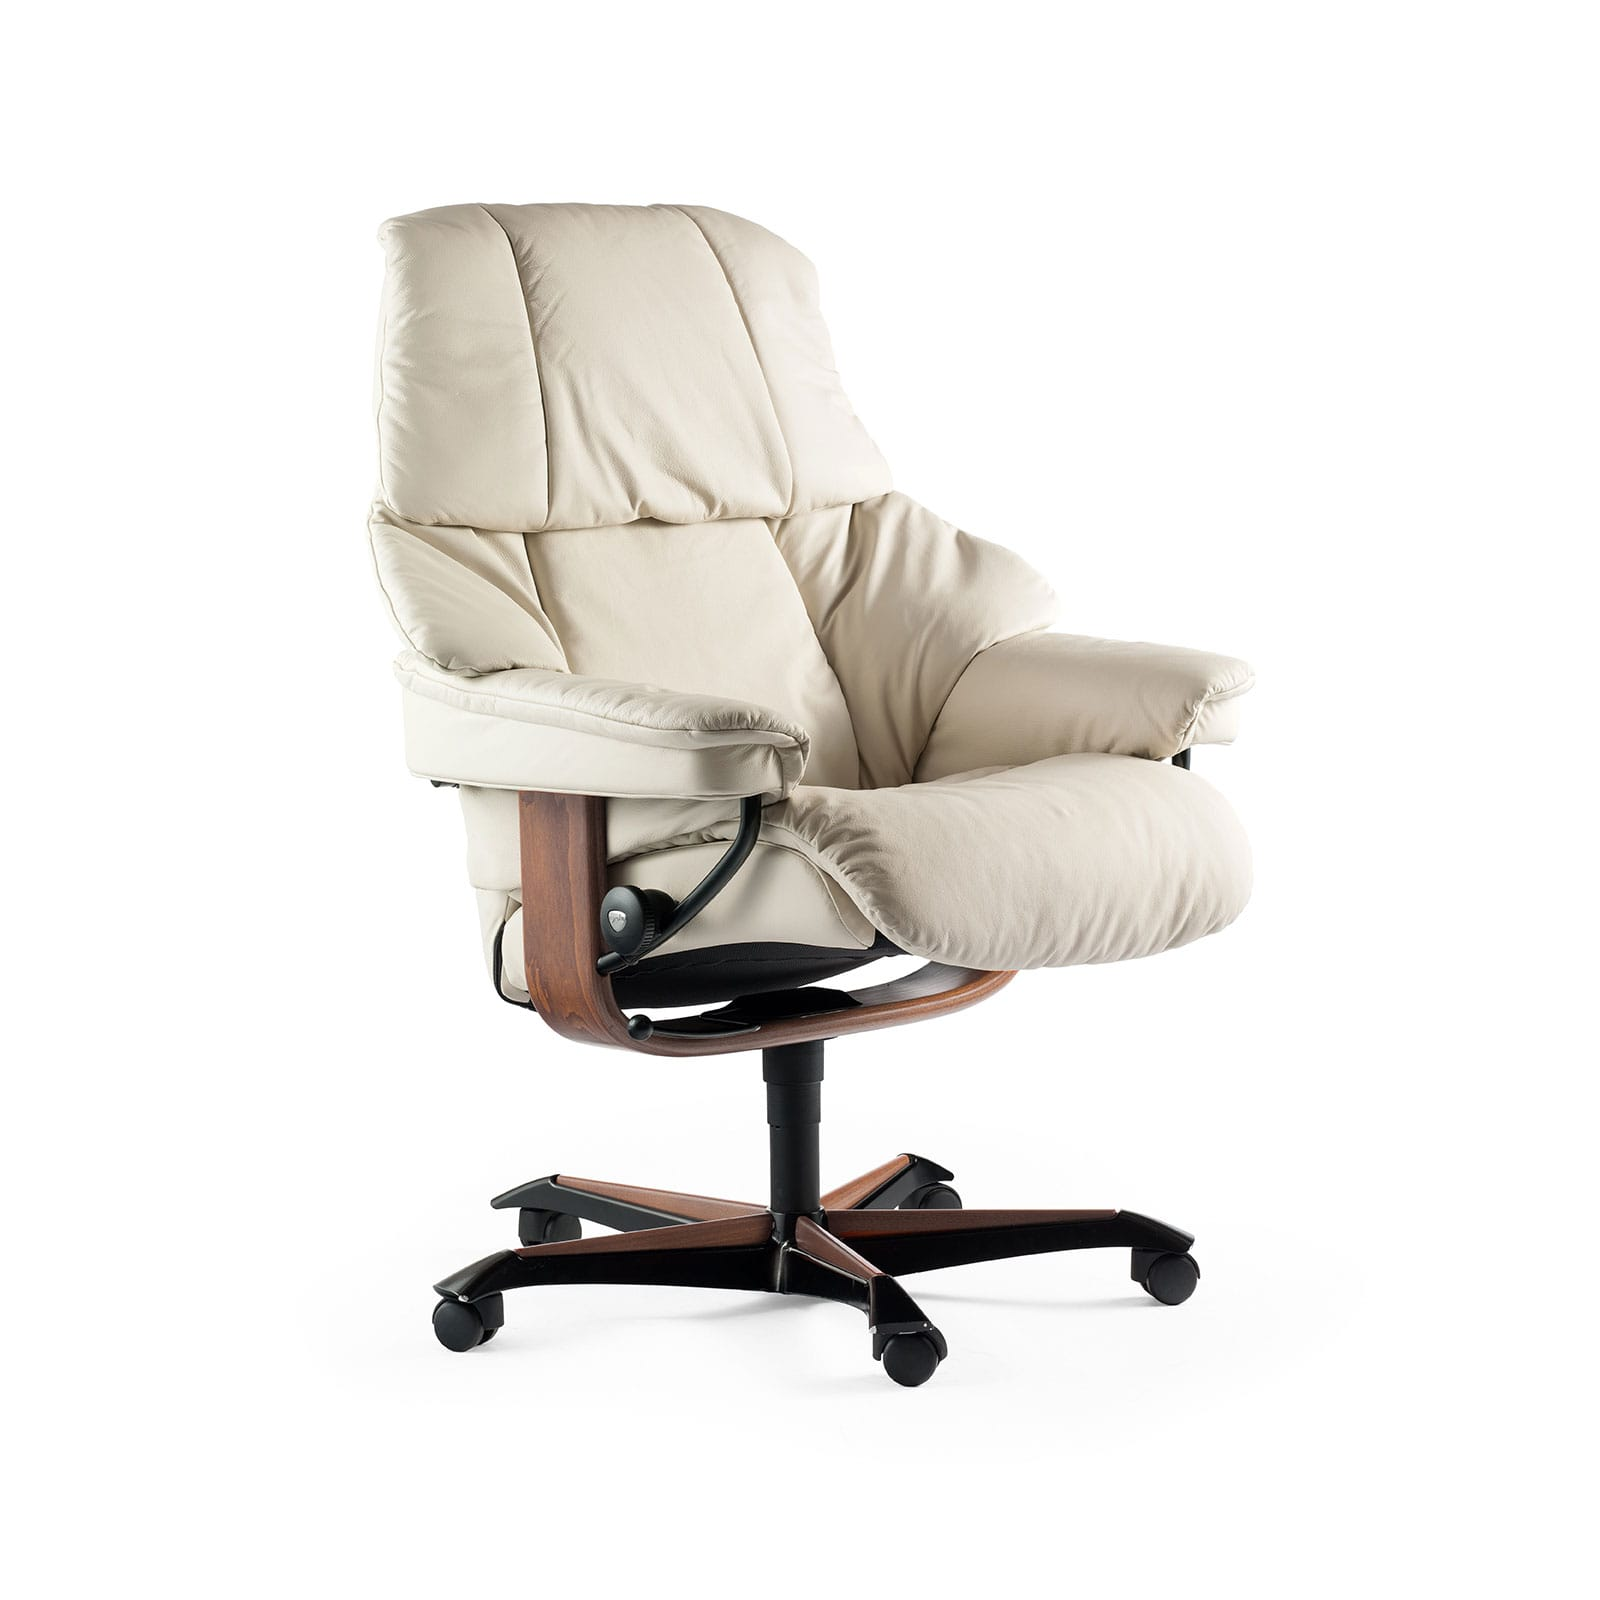 Relaxsessel Mit Rollen Stressless Sessel Reno Bürostuhl Home Office Leder Paloma Light Grey